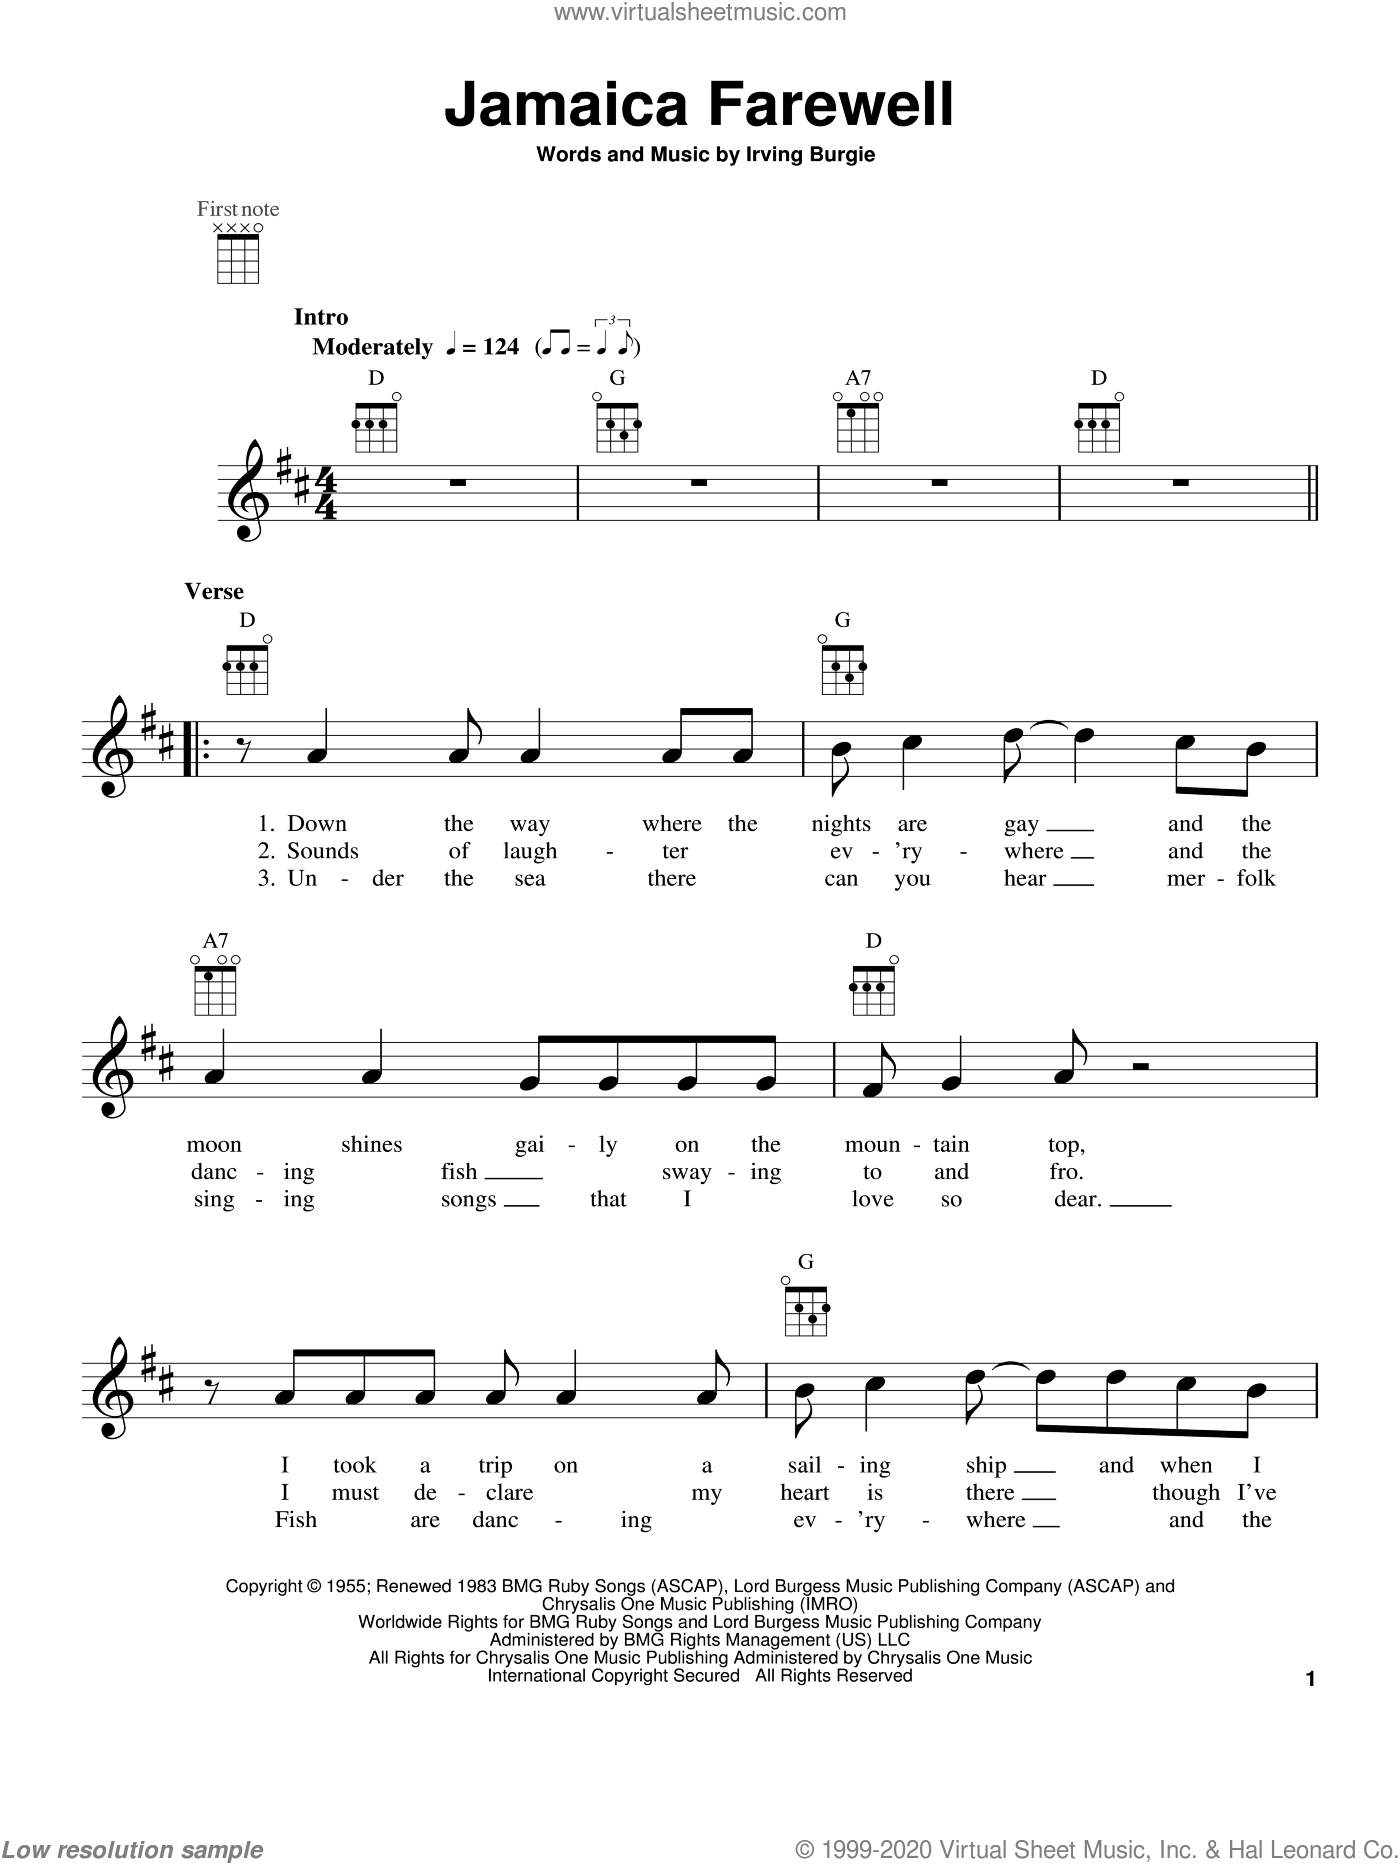 Jamaica Farewell sheet music for ukulele by Irving Burgie